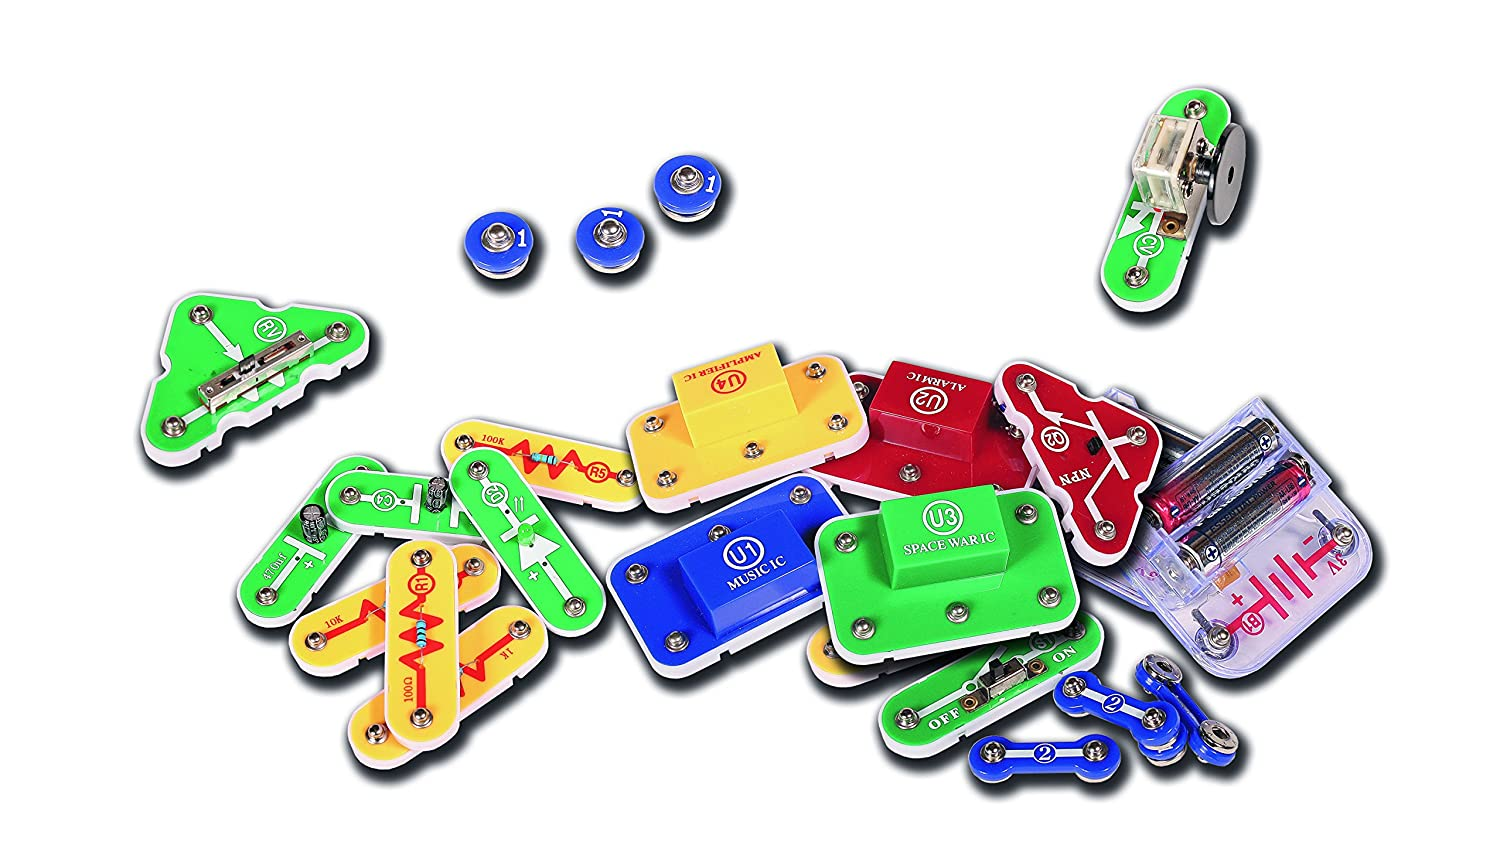 Hot Wires Electronics Kit From John Adams Toys Games Snap Circuits Jr Educational 100 Exp